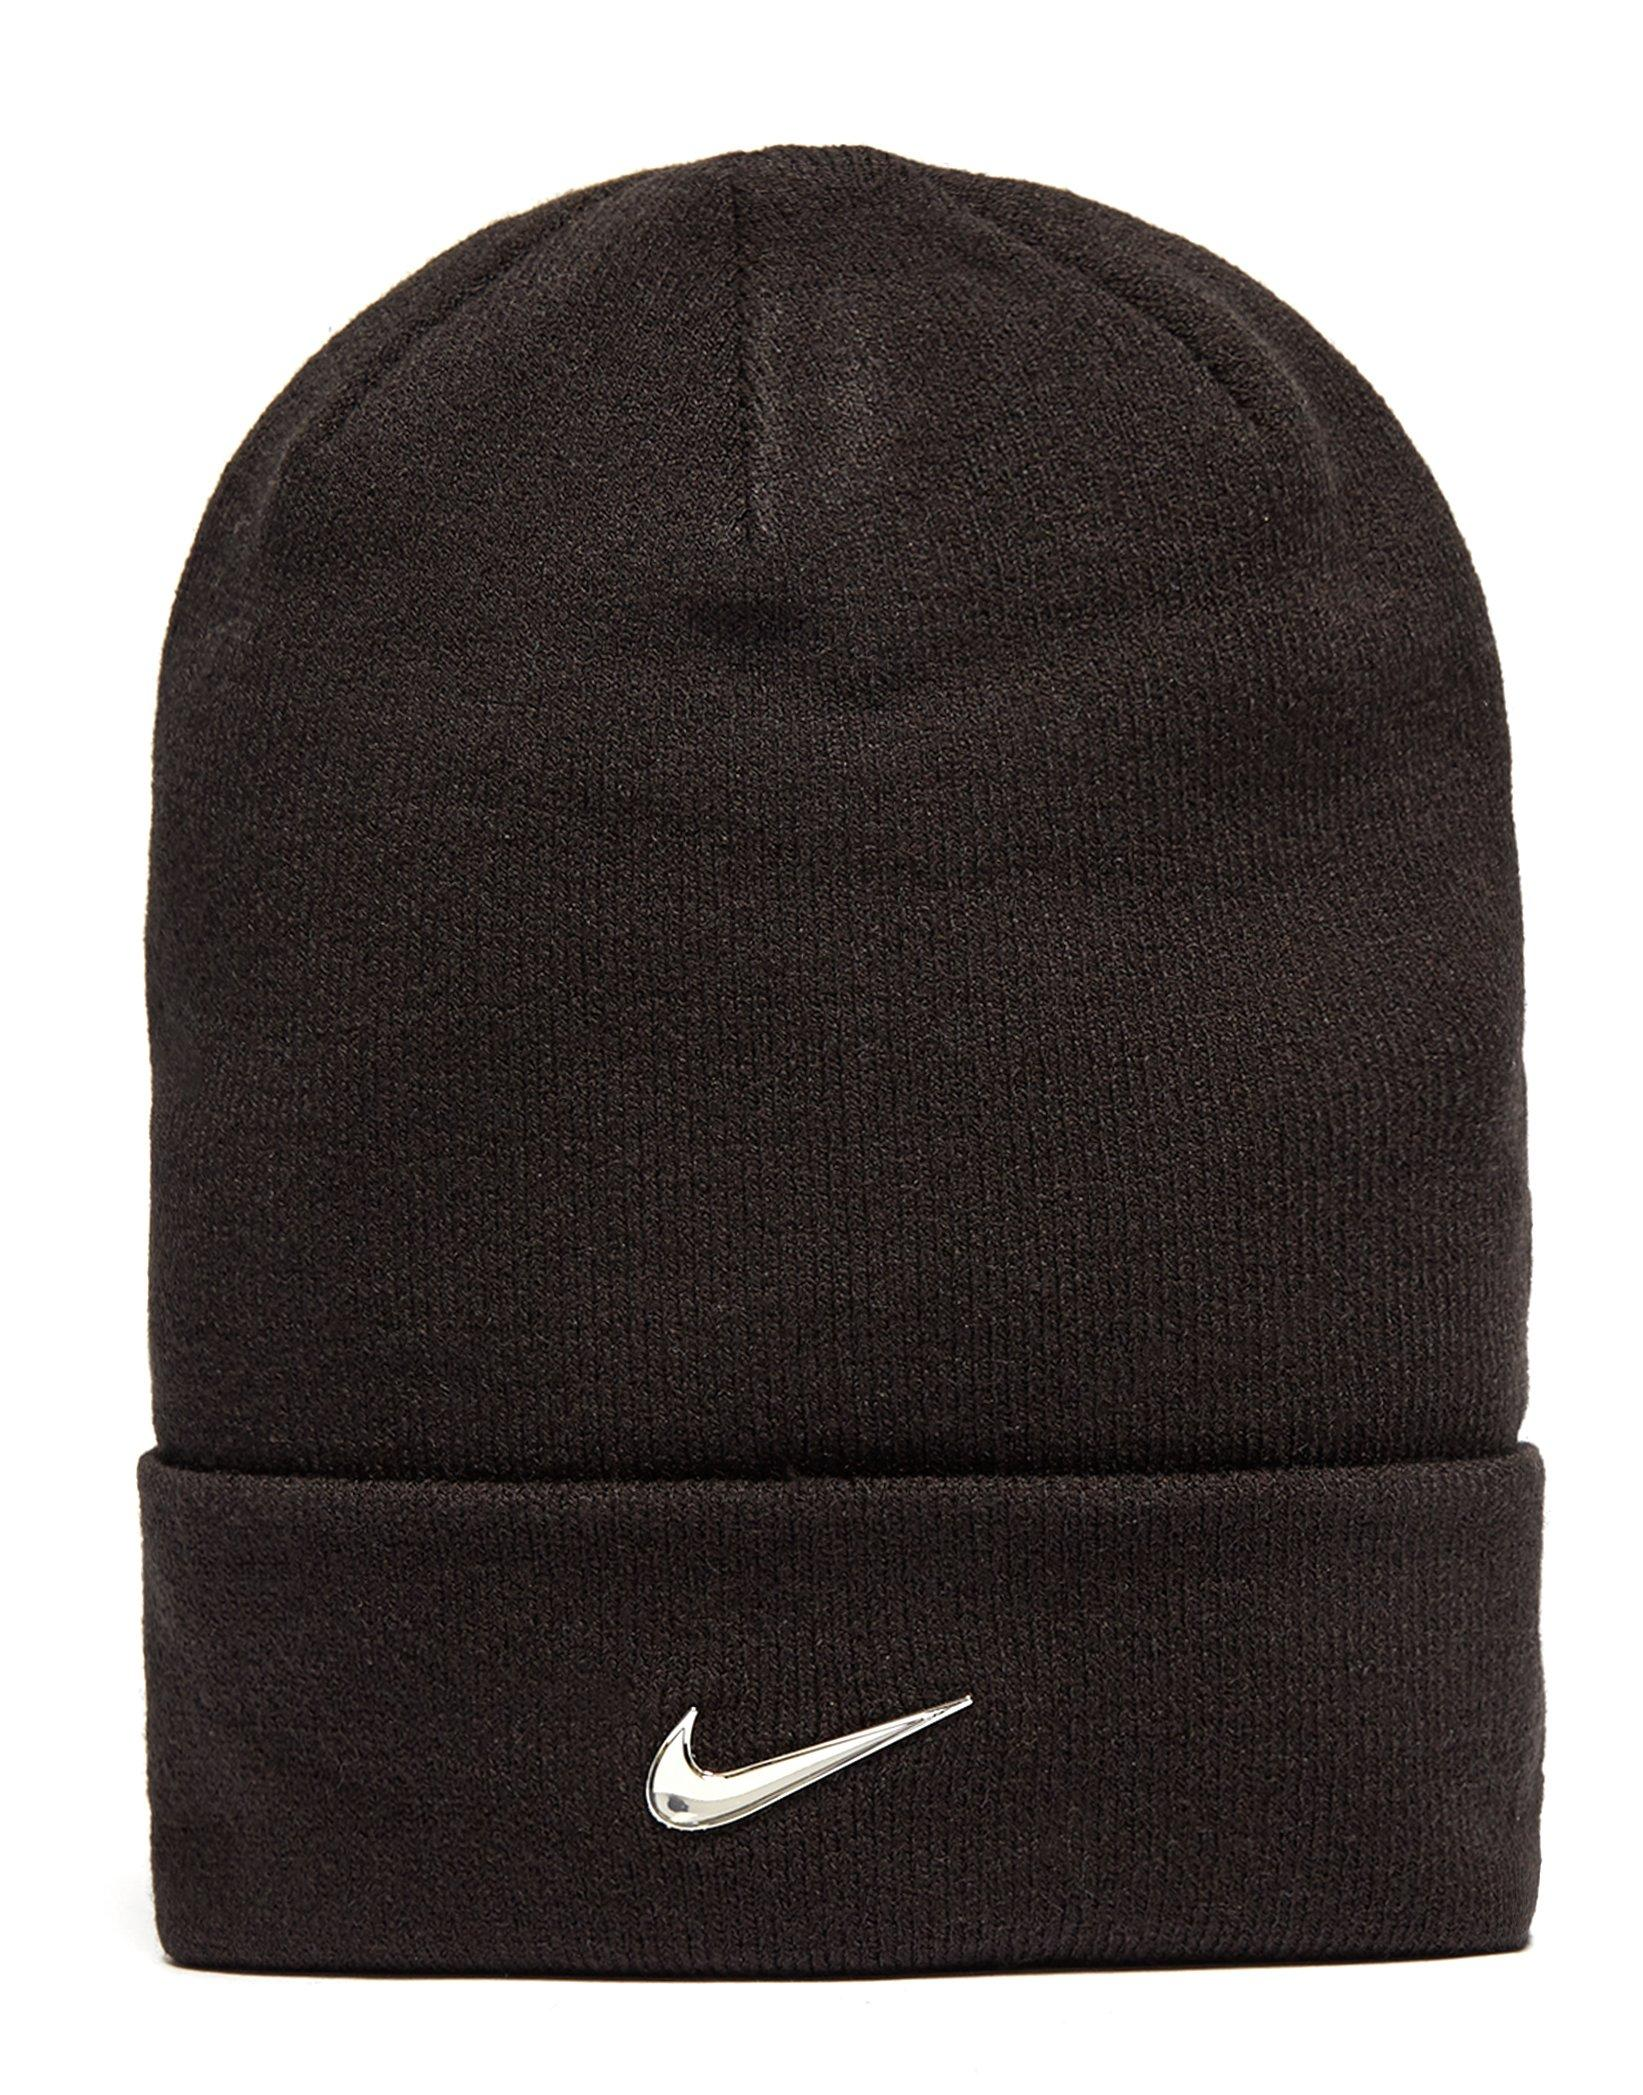 Shop online for Men's Beanies: Knit Caps & Winter Hats at ajaykumarchejarla.ml Find wool knits & cotton blends. Free Shipping. Free Returns. All the time.